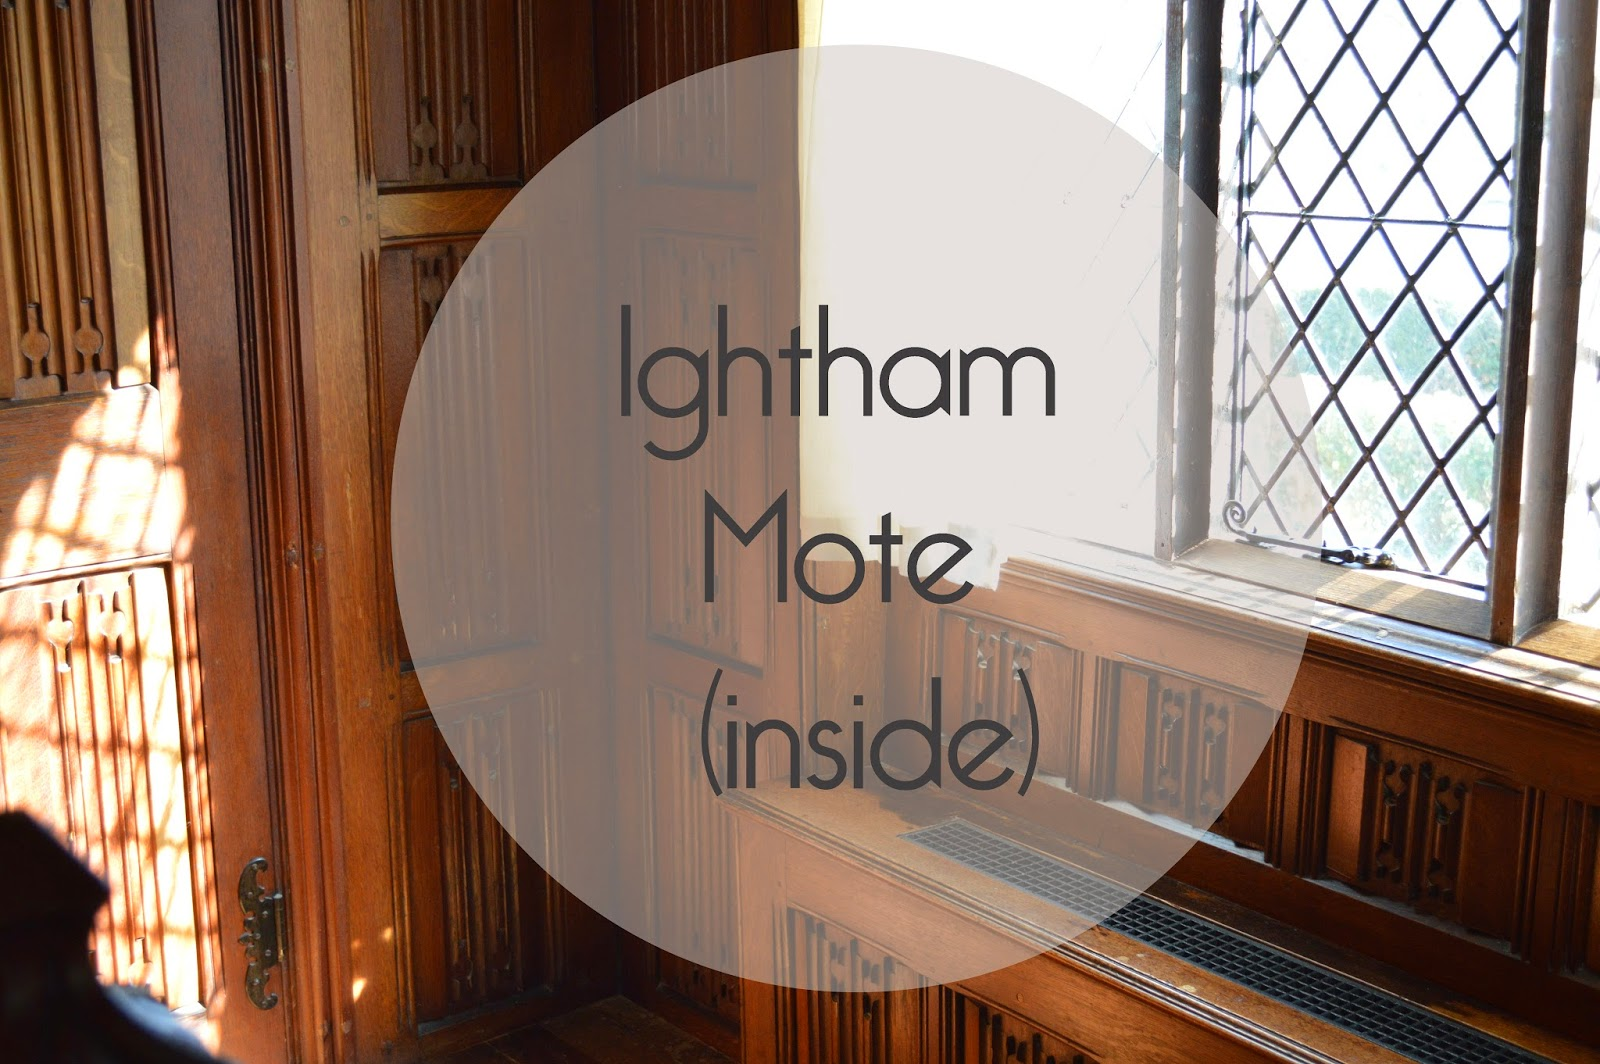 Ightham Mote, visit, England, History, Historical, interior, day trip, National trust, photo, photography,